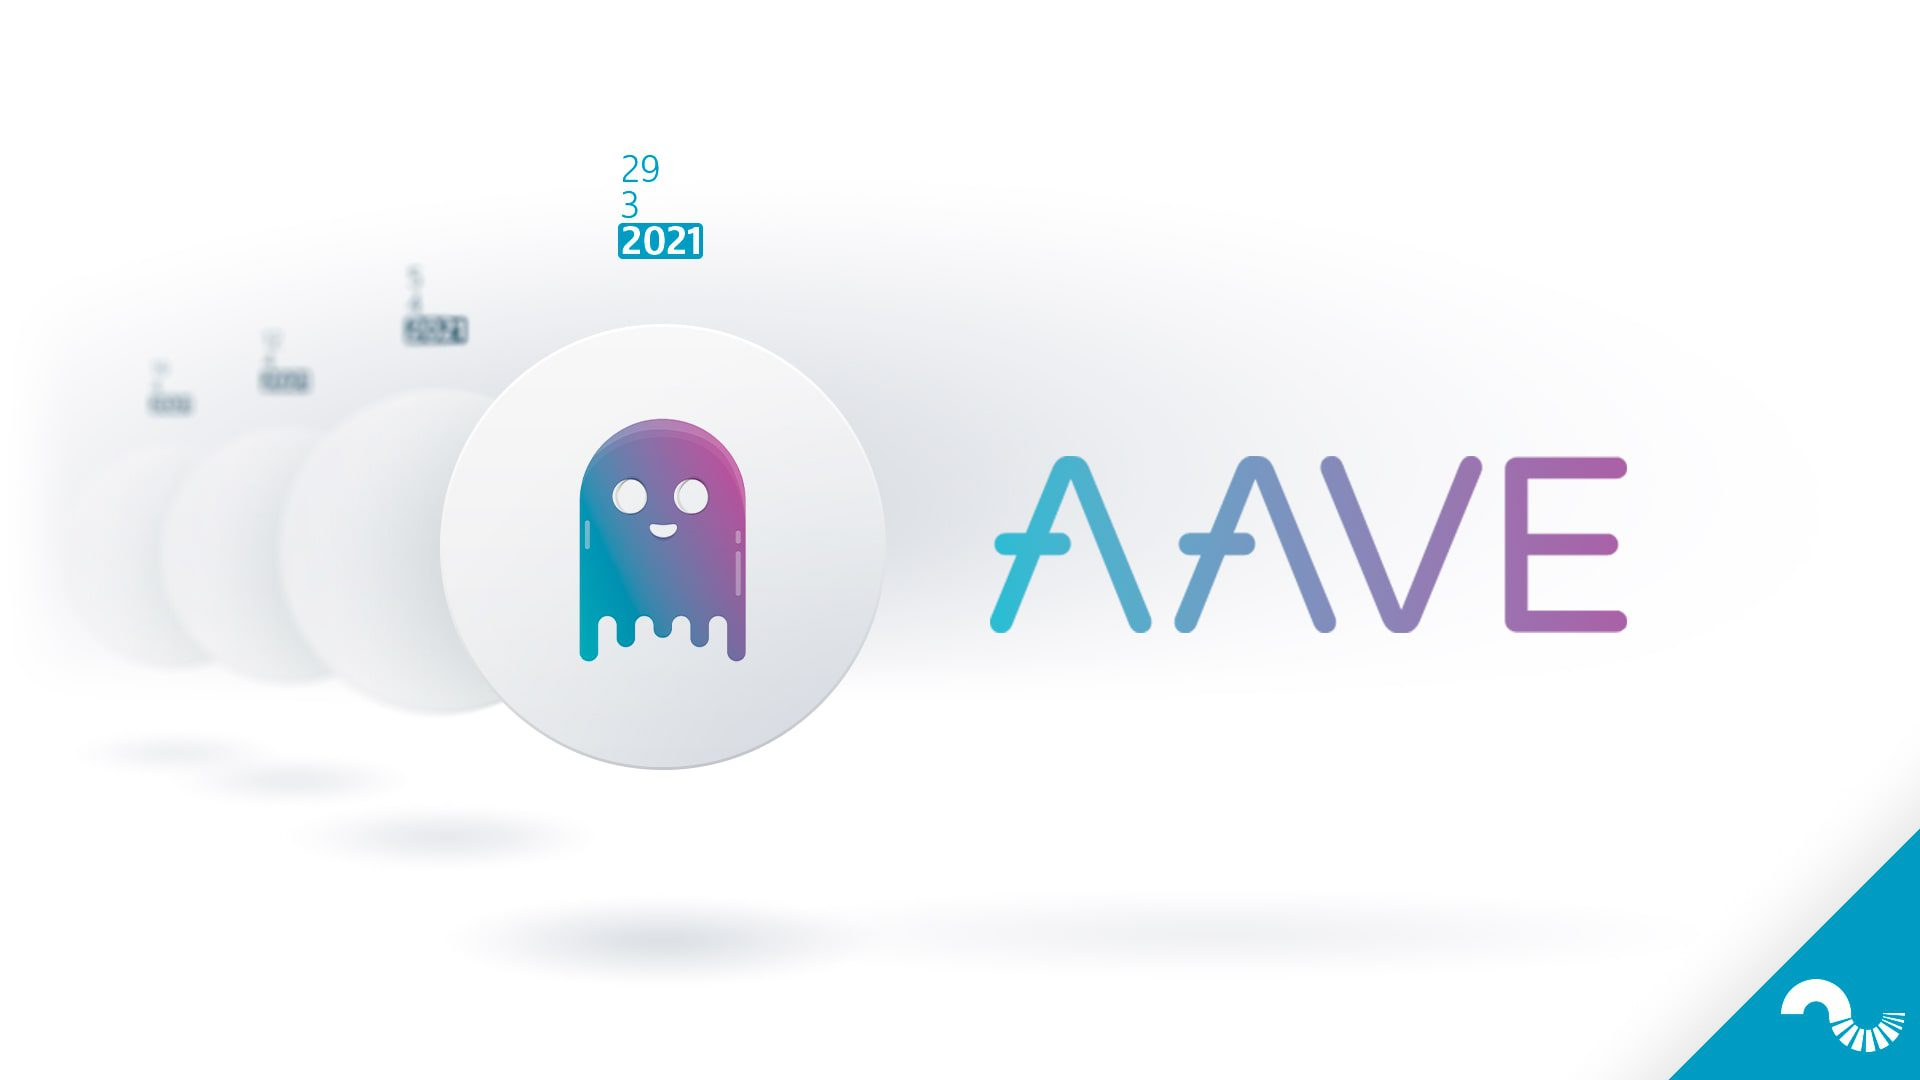 aave_reference-min